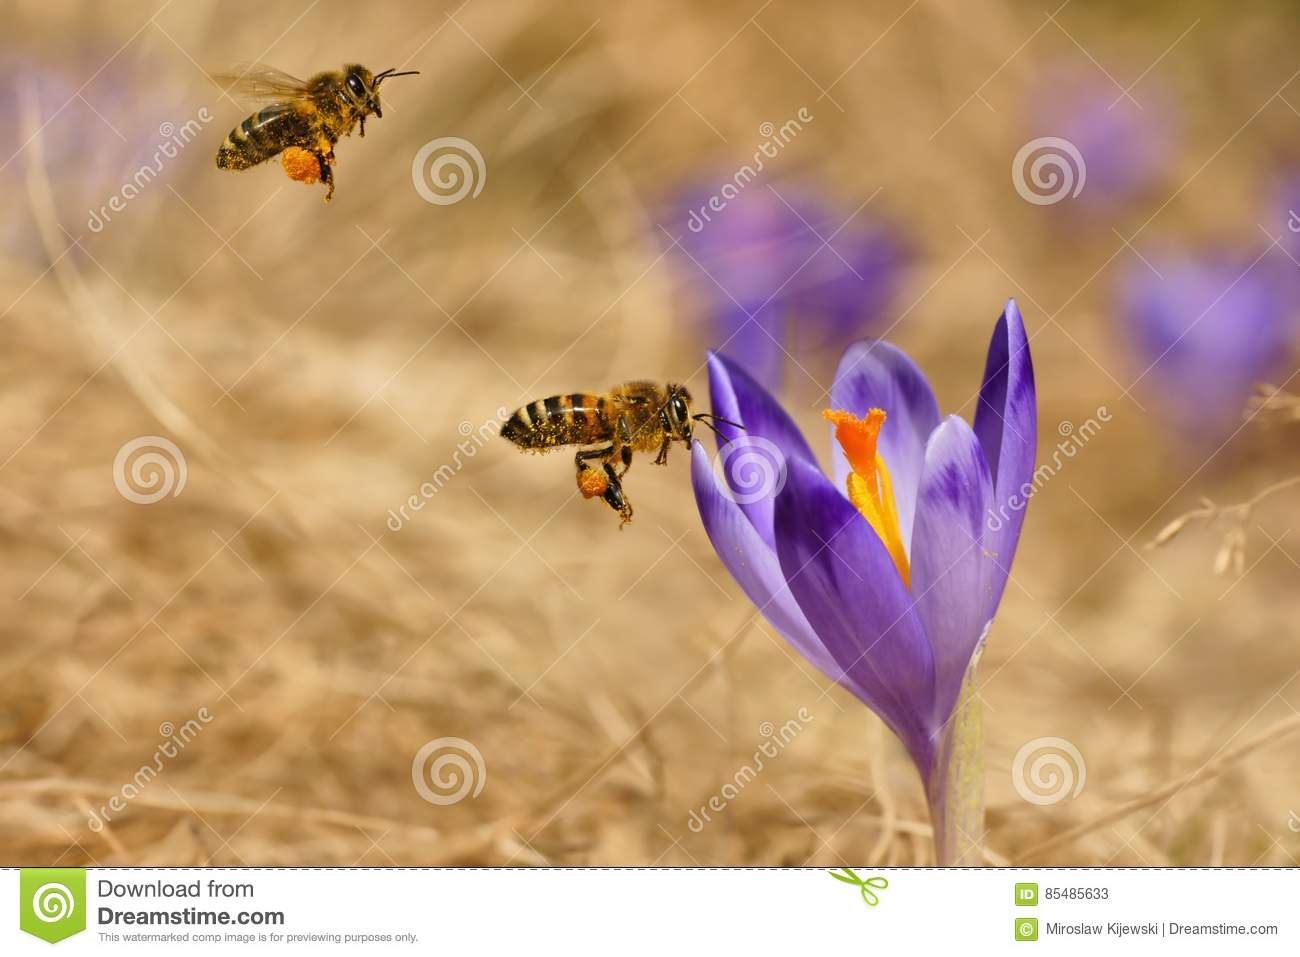 Honeybees Apis mellifera, bees flying over the crocuses in the spring